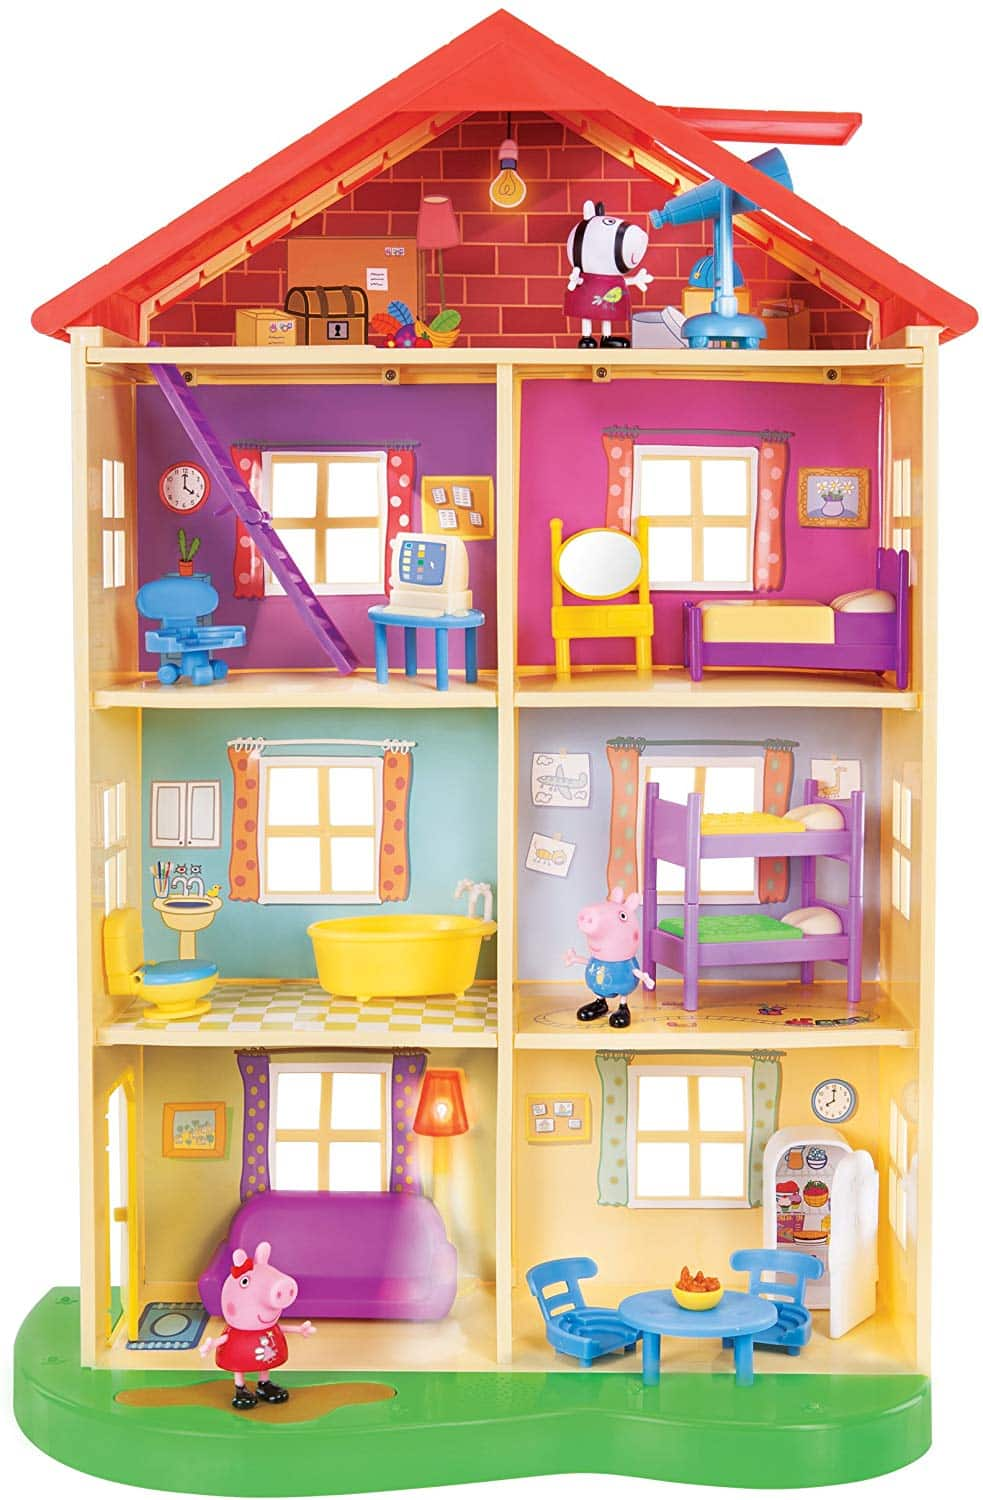 Peppa Pig Lights & Sounds Family Home Playset $35.00 Walmart / Amazon +Free Shipping